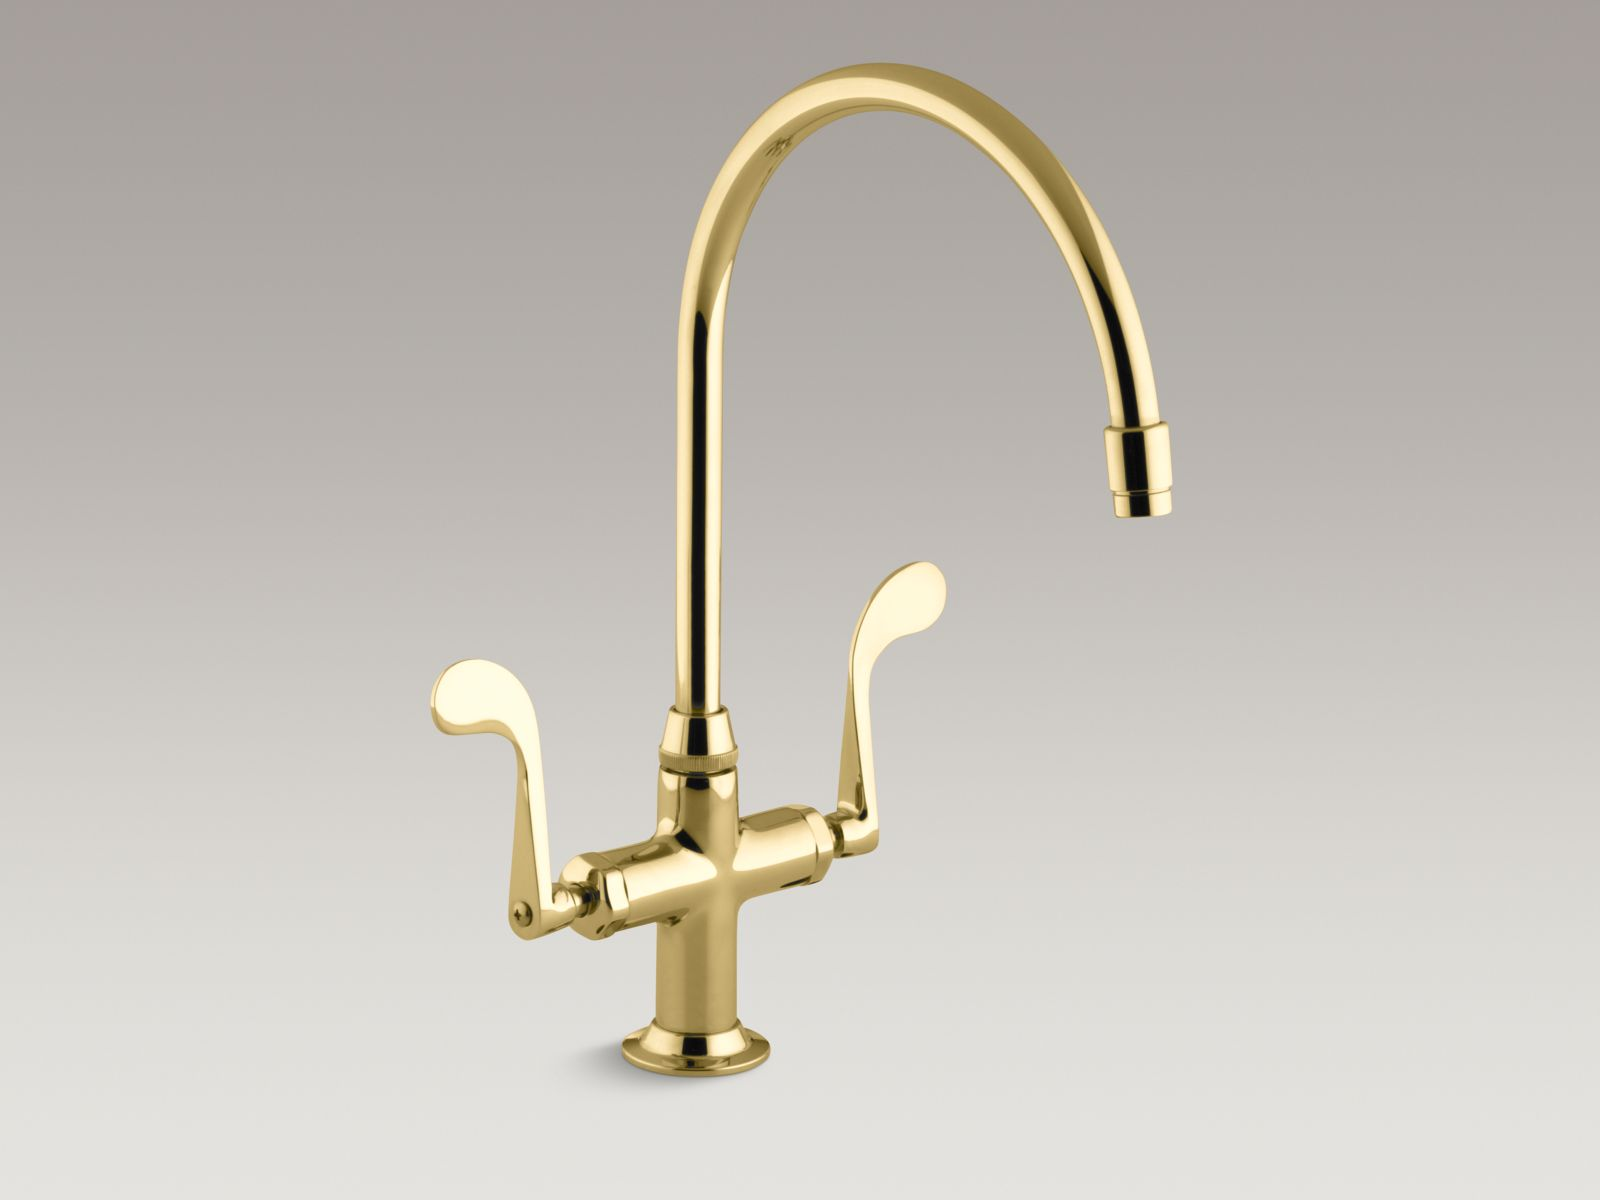 Kohler K-8762-PB Essex Sink Faucet Vibrant Polished Brass